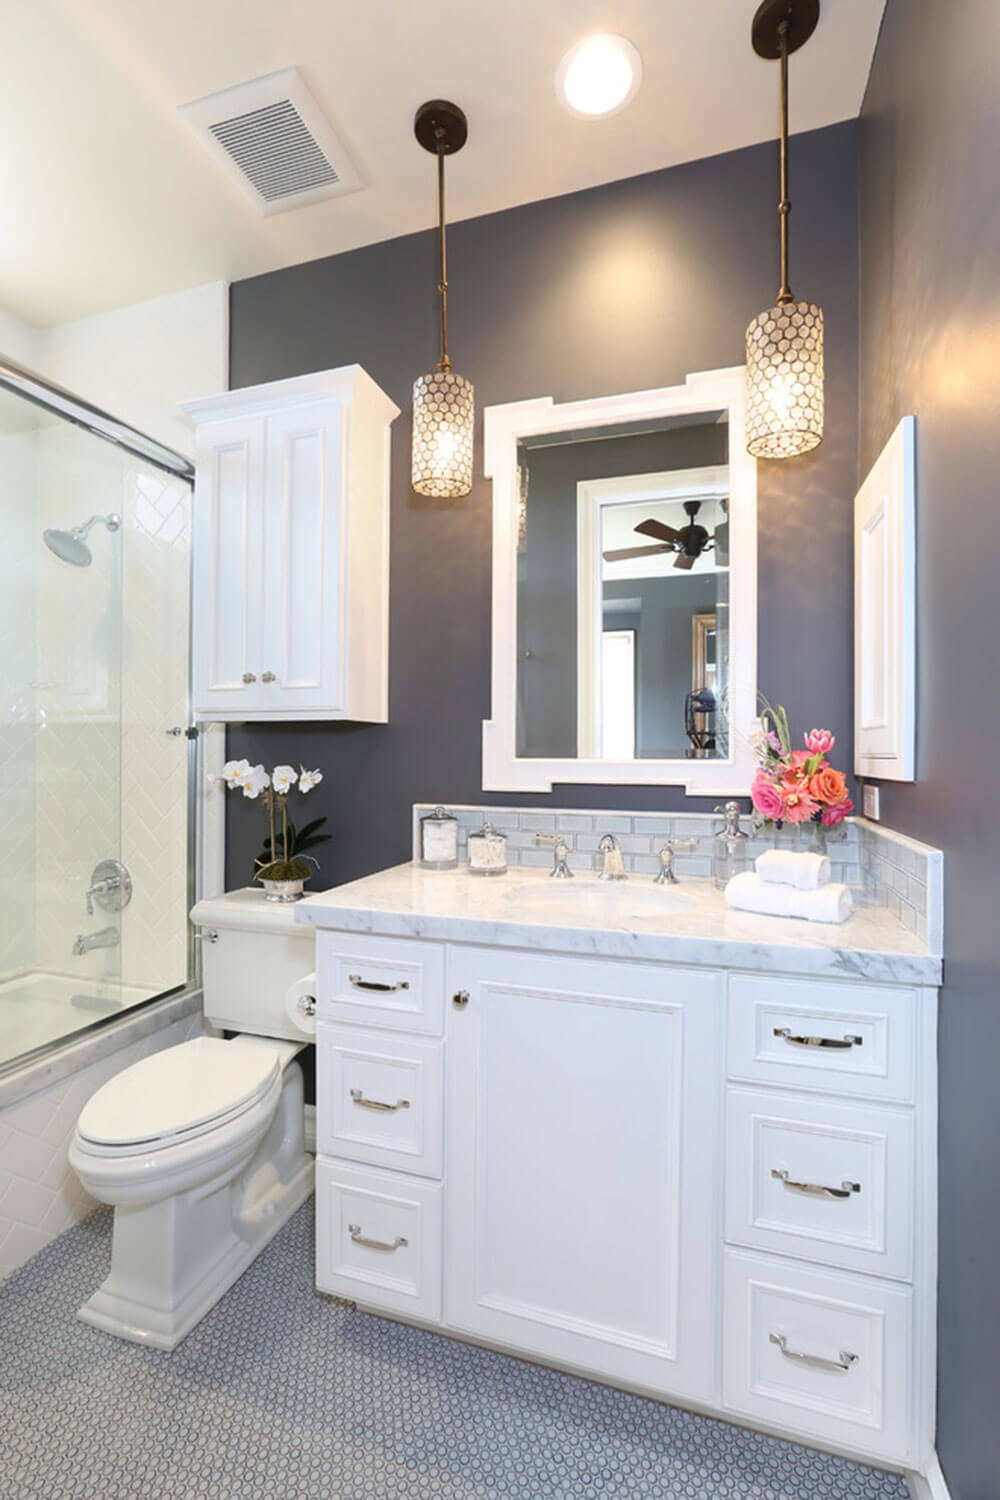 Colors for bathroom 2017 - Uncluttered Color Scheme In Dark Gray And White